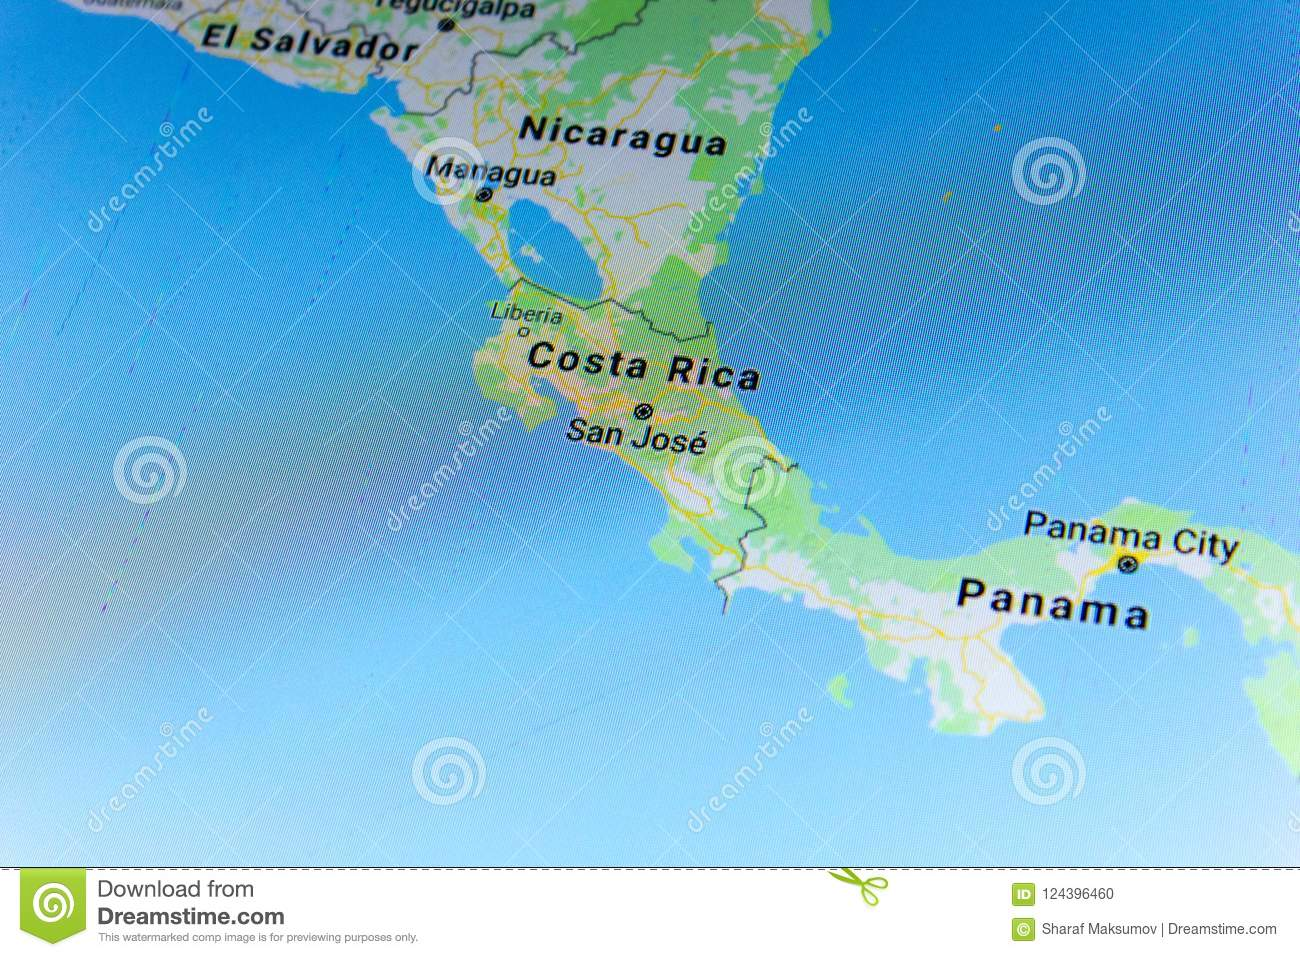 Ryazan, Russia - July 08, 2018: Country Of Costa Rica On The Google on formosa on a map, heard island on a map, atlantic ocean on a map, chile on a map, guyana on a map, new south wales on a map, british north borneo on a map, honduras on a map, dr congo on a map, cuba on a map, the sudan on a map, central america on a map, the seychelles on a map, nicaragua on a map, germany on a map, botswana on a map, sea of cortez on a map, venezuela on a map, southern india on a map, galapagos islands on a map,